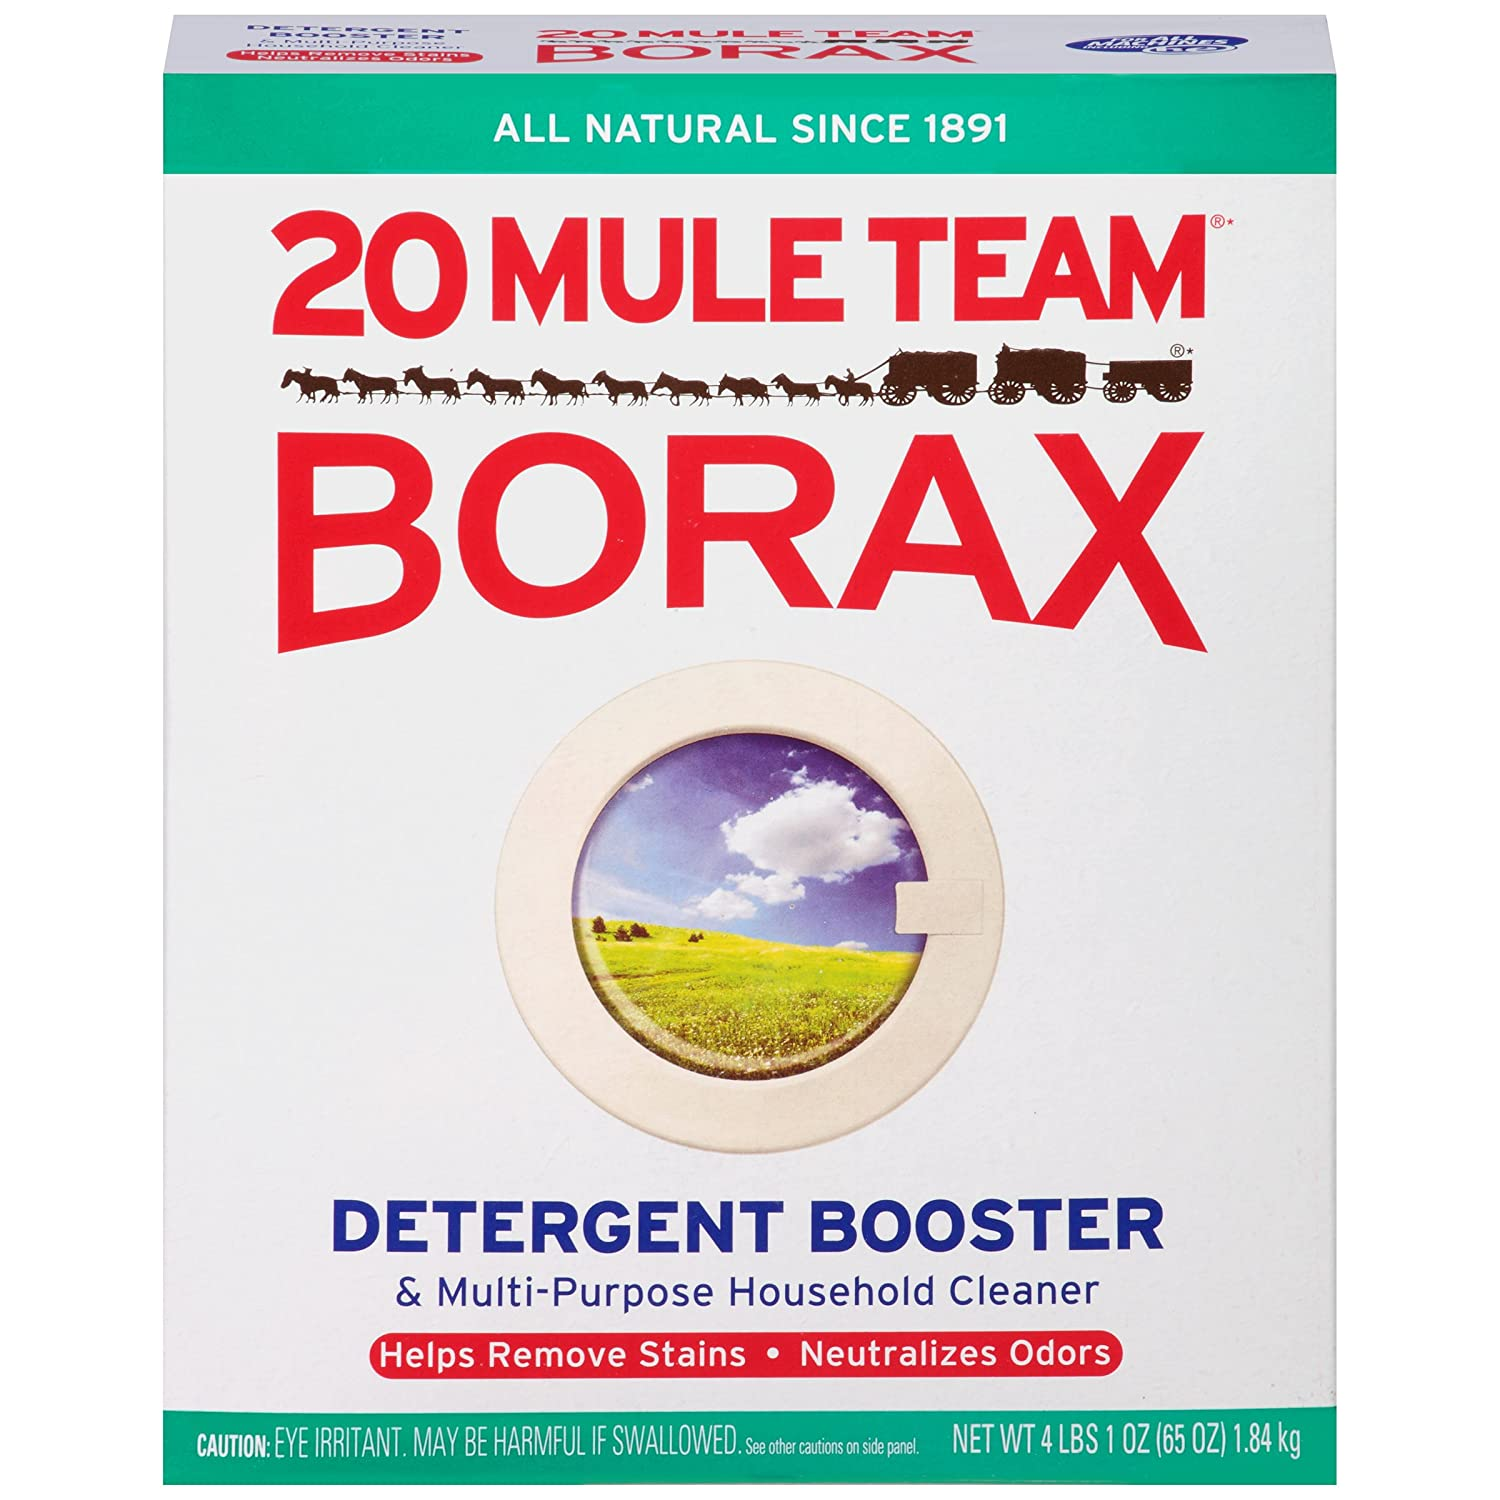 All natural! 20 Mule Team Borax Natural Laundry Booster & Multi-Purpose Household Cleaner76.0 oz.(1pk)